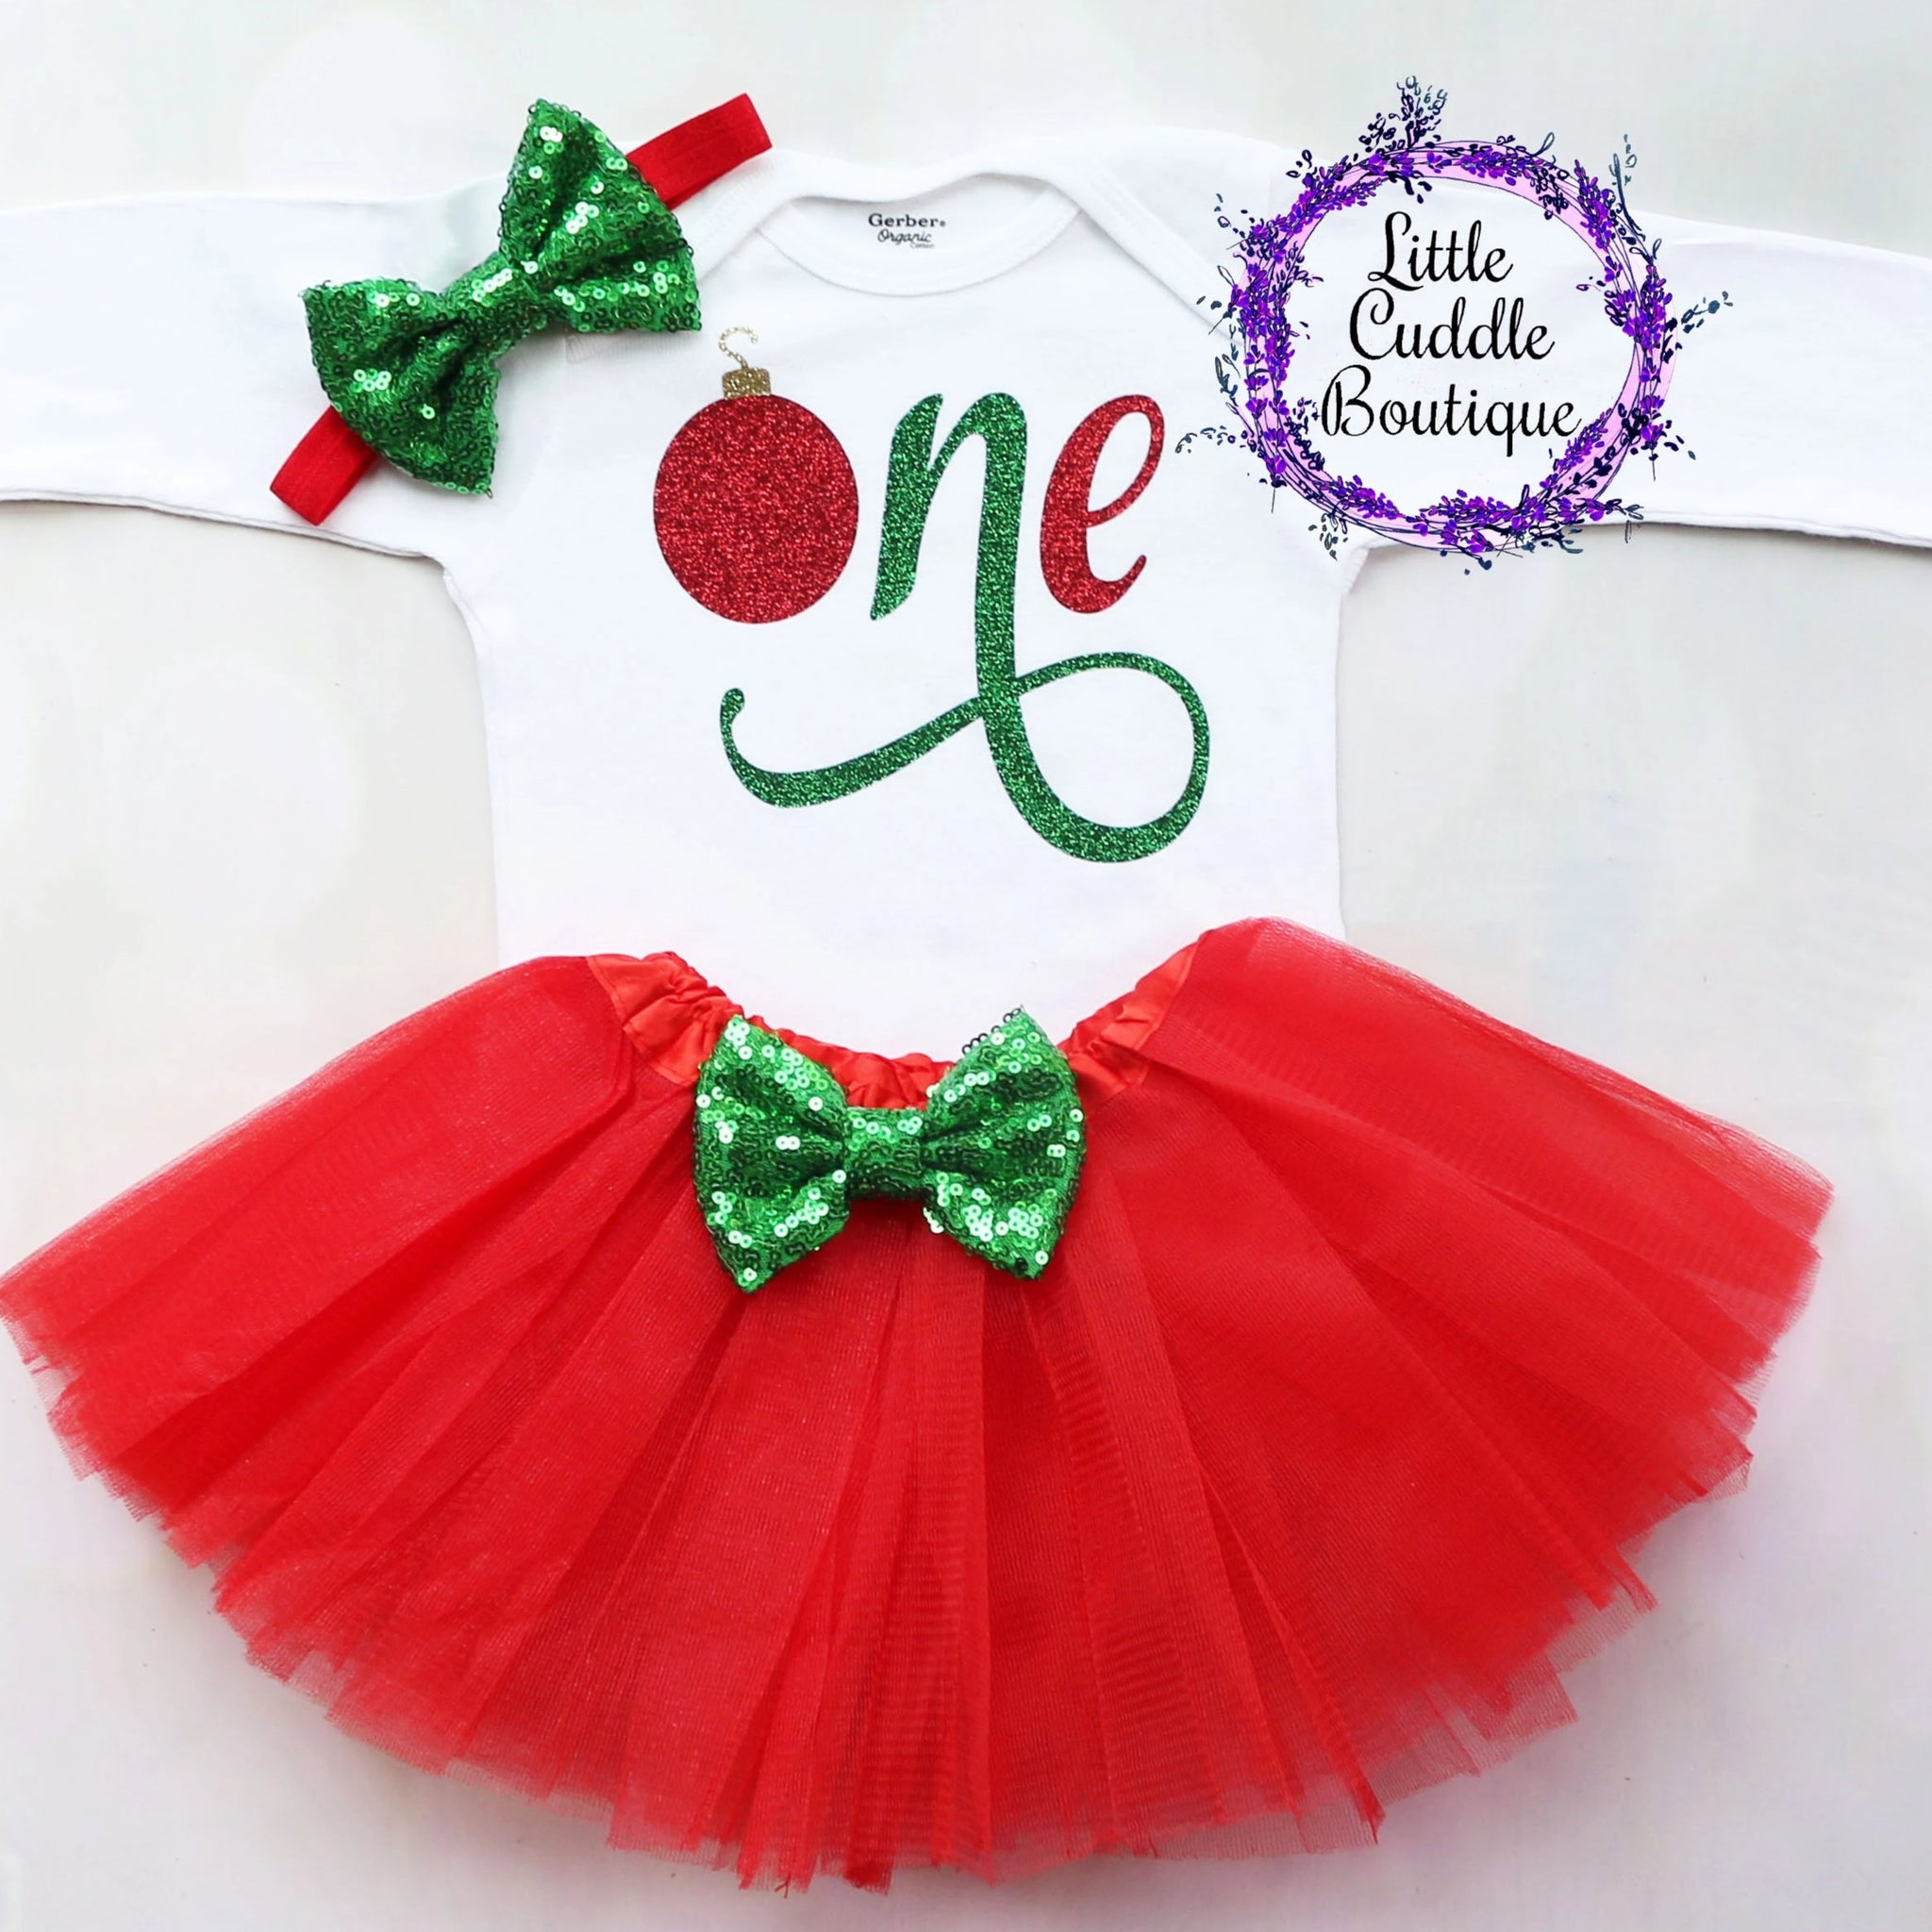 Christmas First Birthday Baby Outfit Little Cuddle Boutique